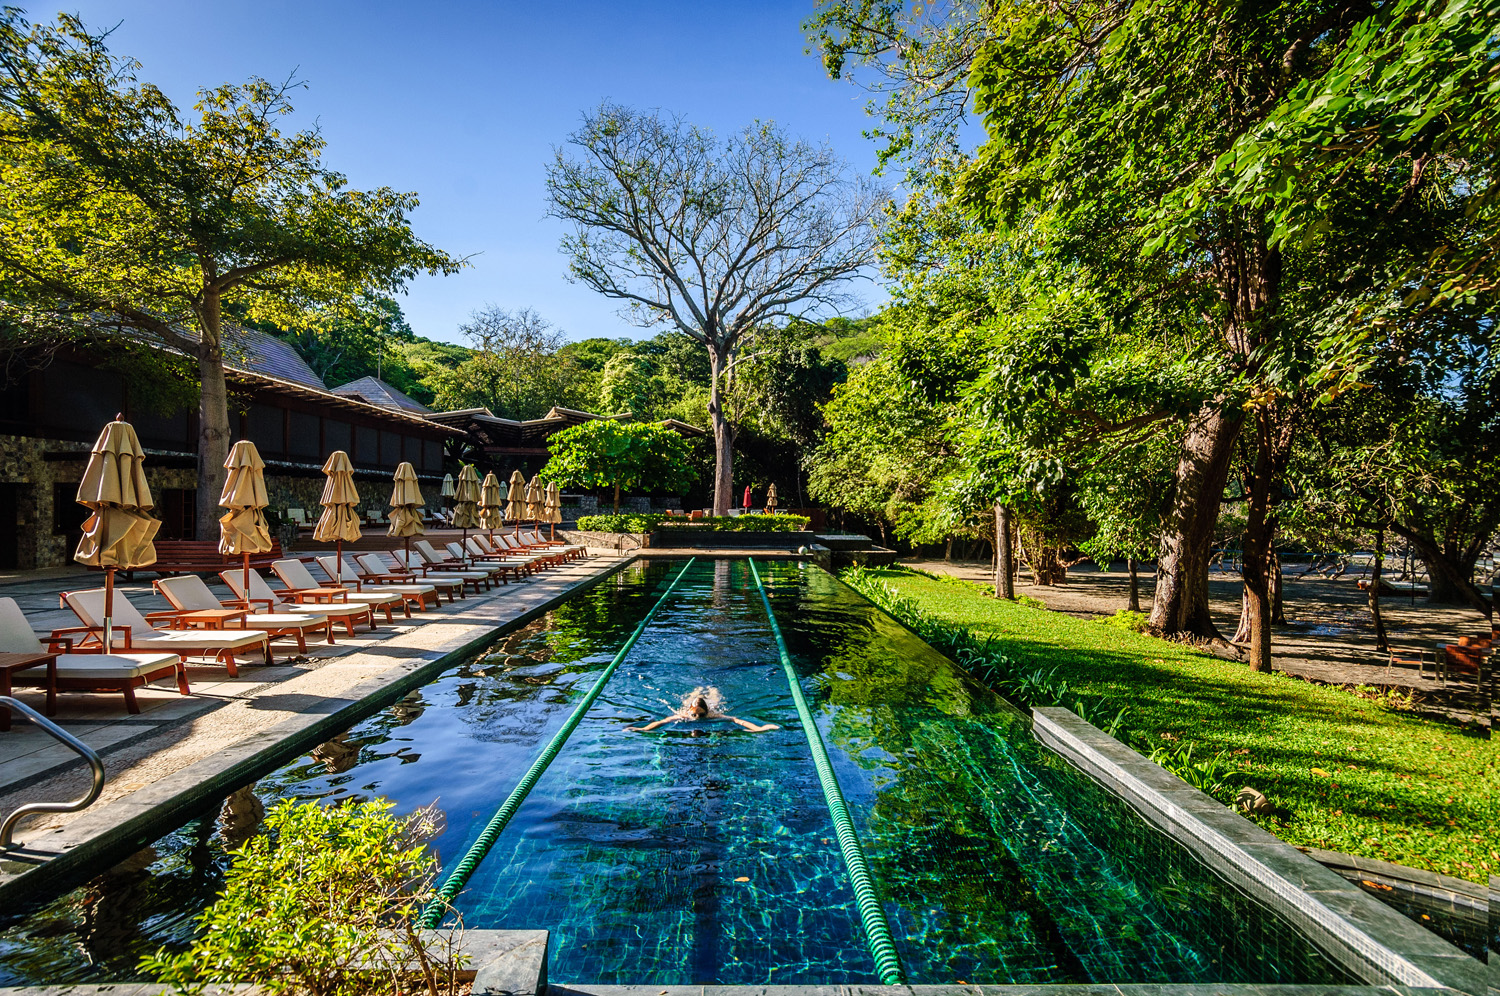 El Alma Soul Retreat in Costa Ricaexemplifies hotels' trend of going natural with their design.